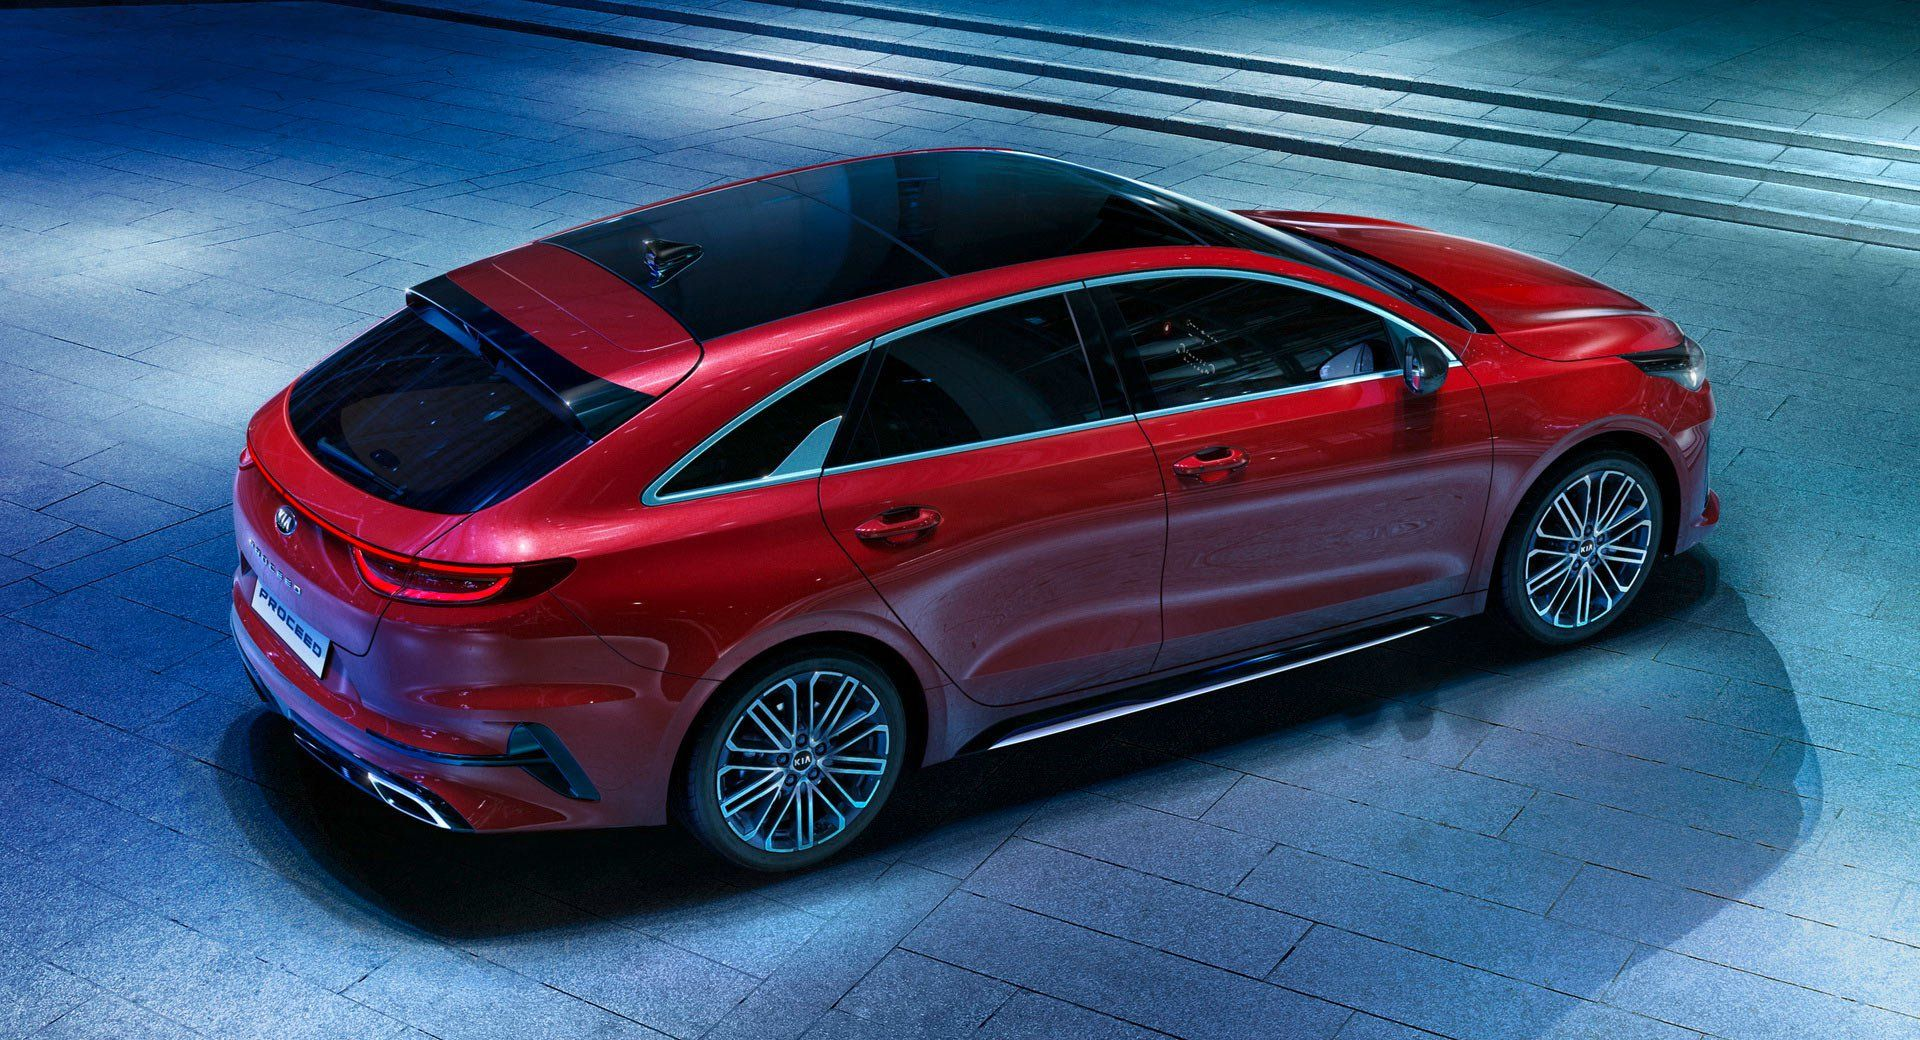 New Kia Proceed Merges Wagon Practicality With Great Looks New Photos Carscoops Kia Best Luxury Sports Car Sports Cars Luxury